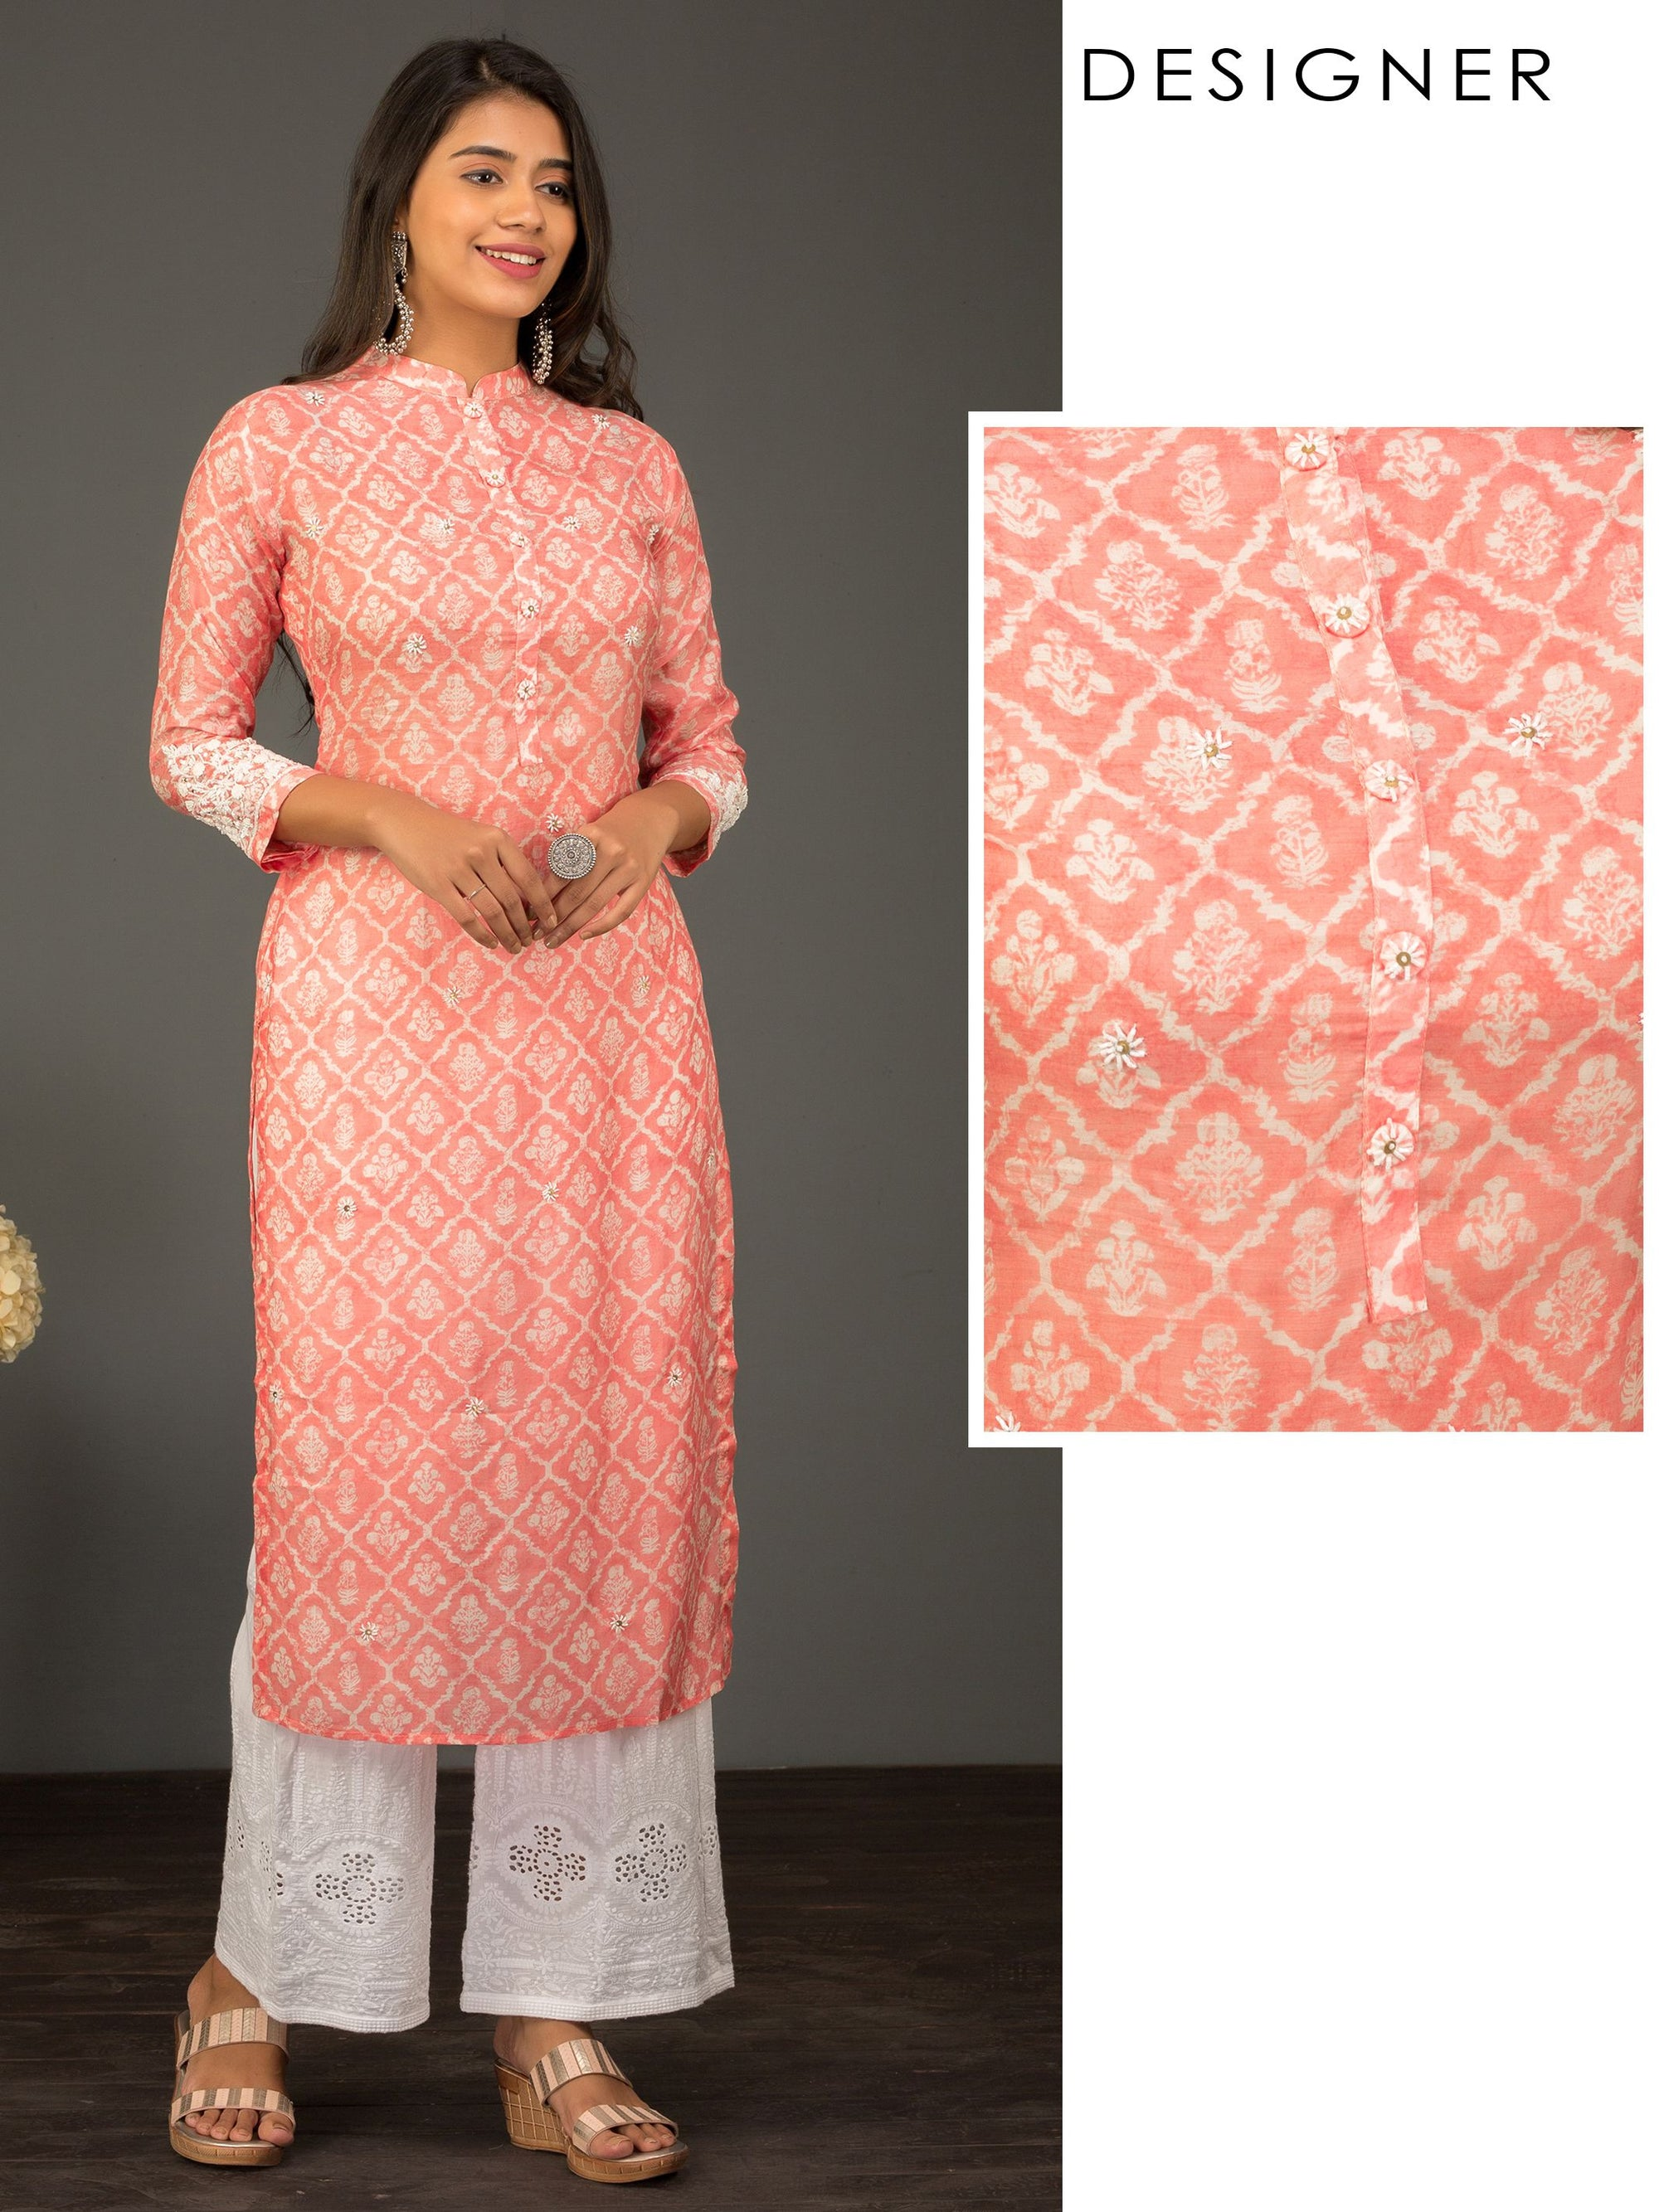 Premium Floral Printed Kurta With Cutdana And French Knot Embroidery - Cotton Candy